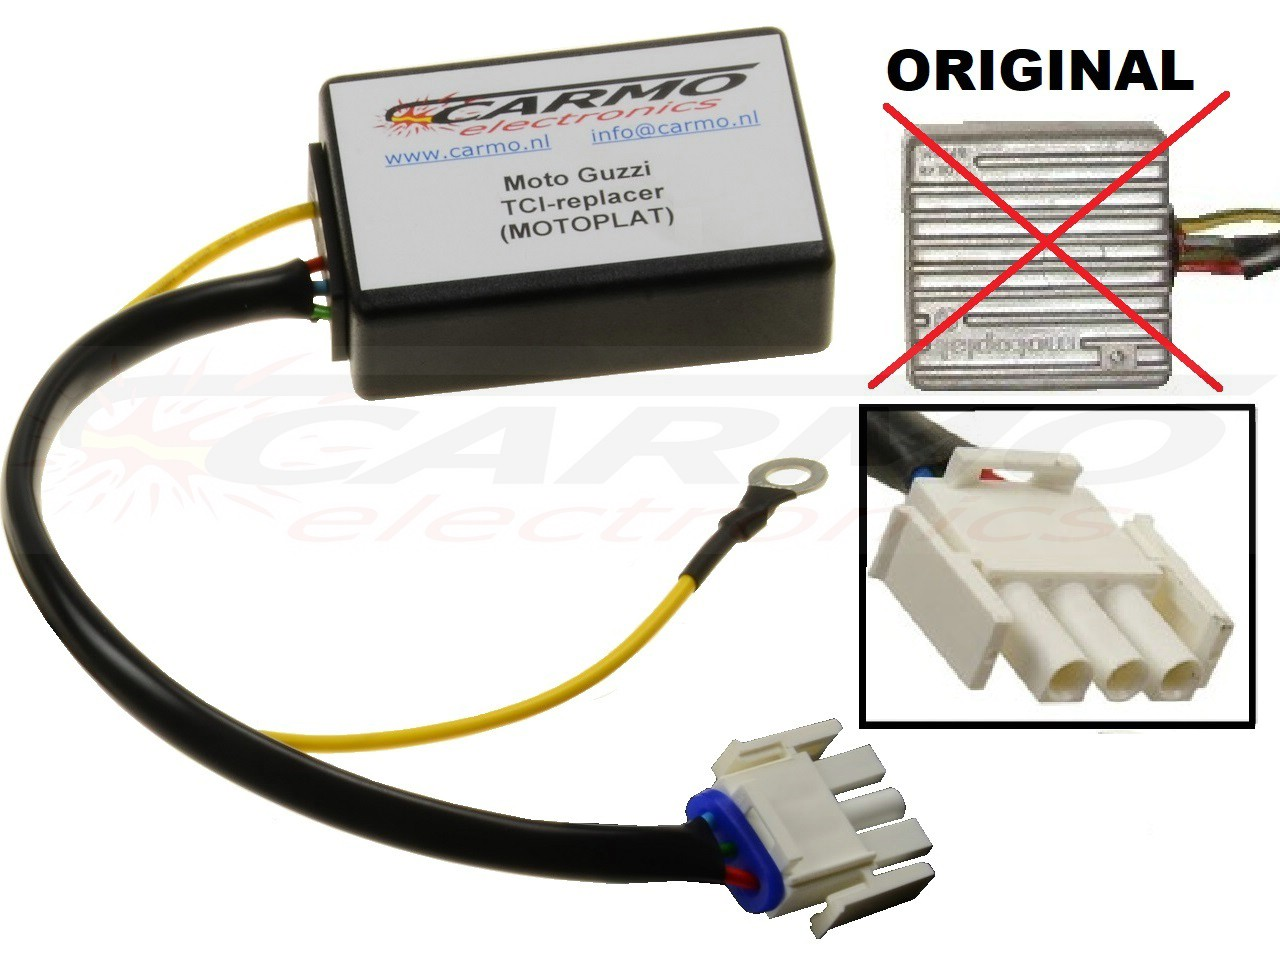 Improved CDI TCI ECU Replacers units : Carmo Electronics